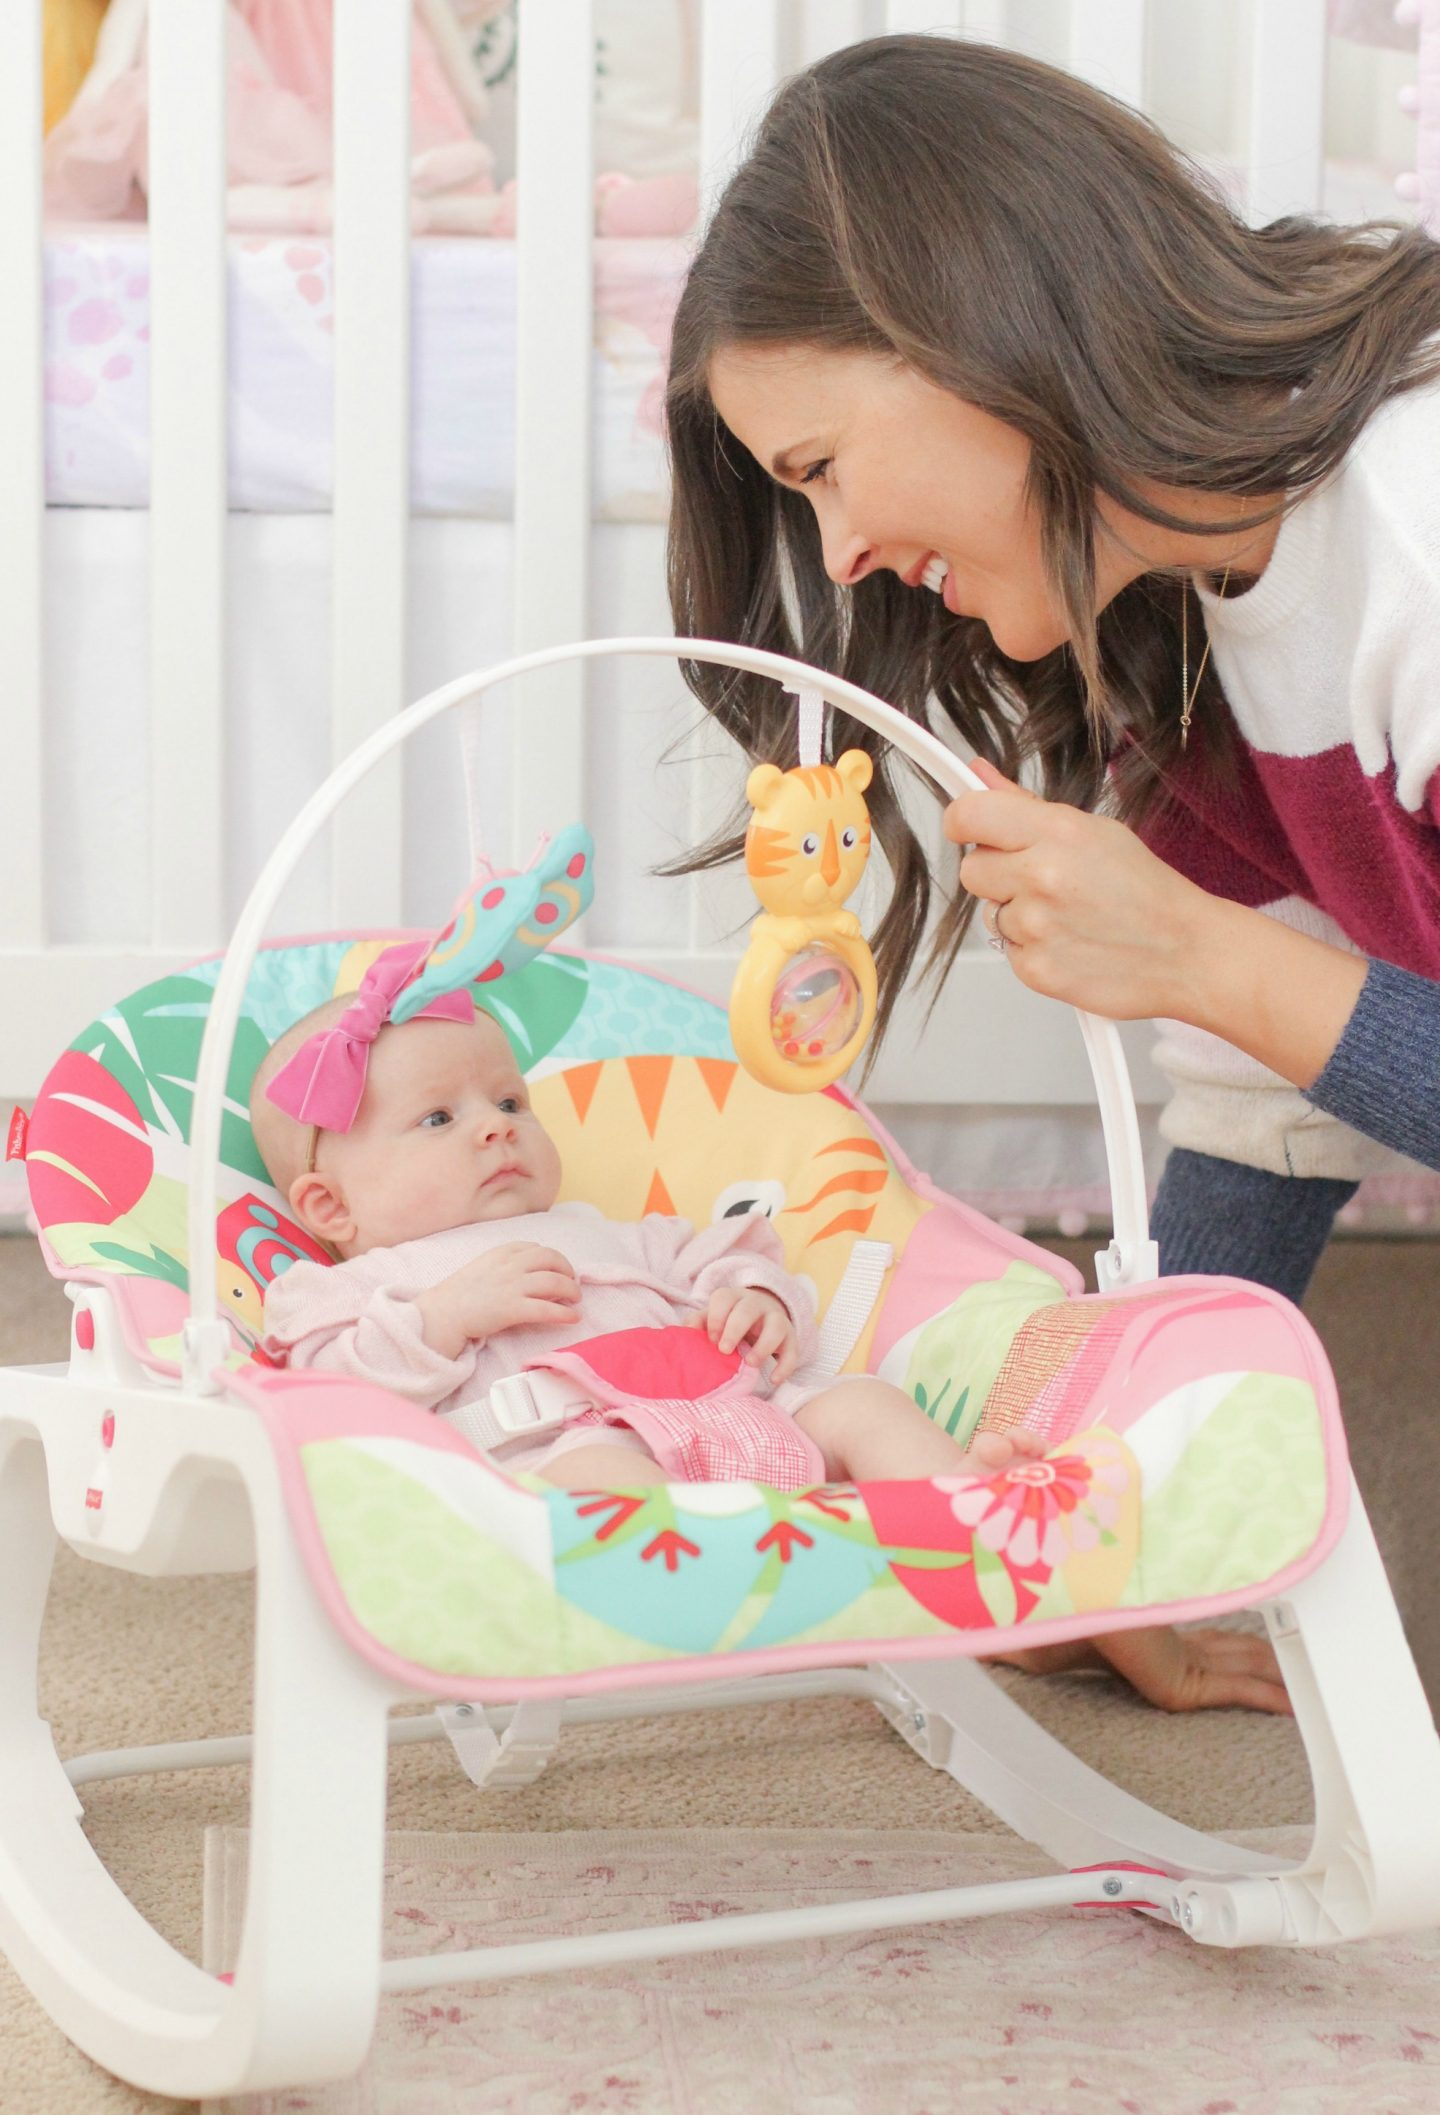 walmart best of baby sale baby_products 2019 brie bemis rearick